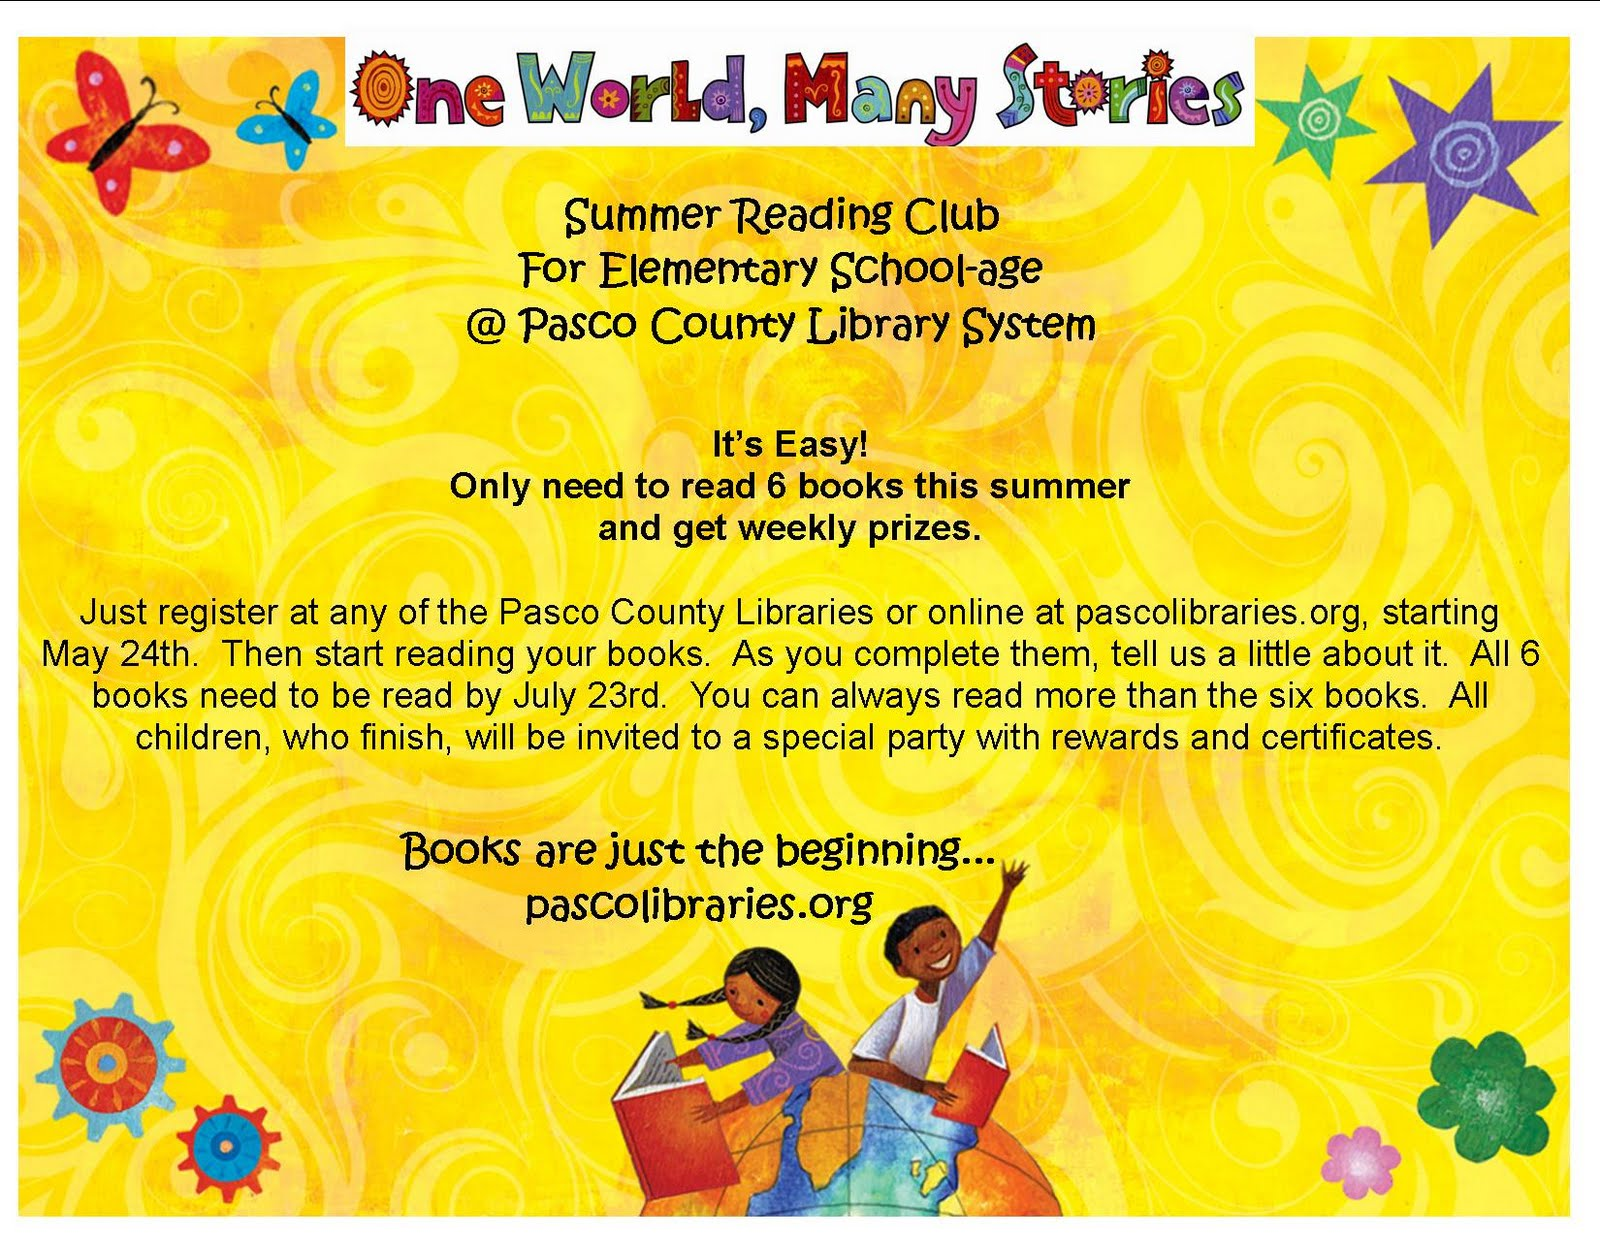 sign up for summer reading club starts may 24th